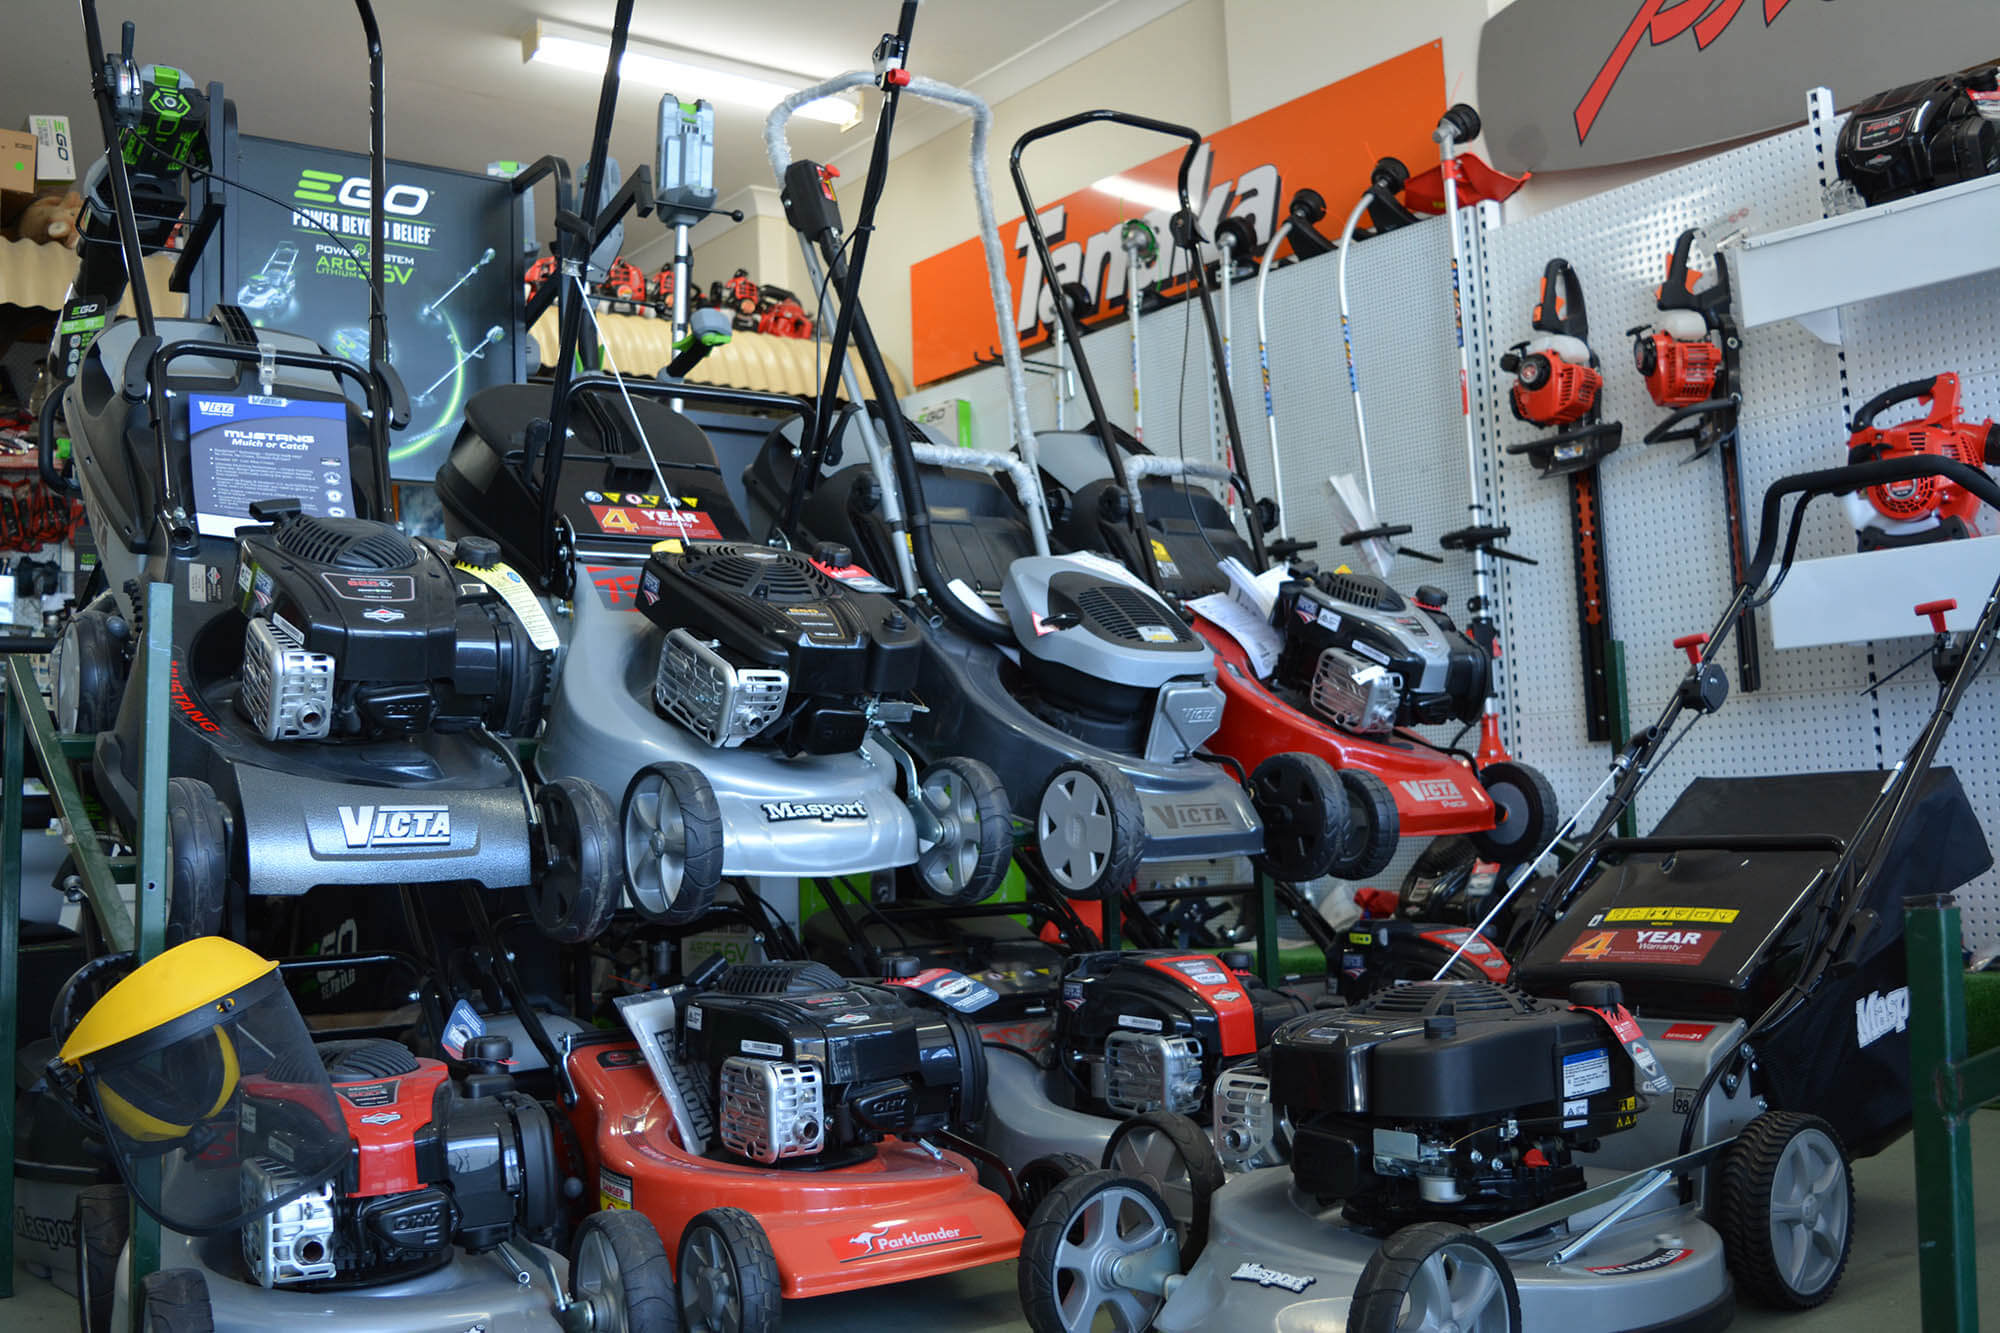 More mowers on display